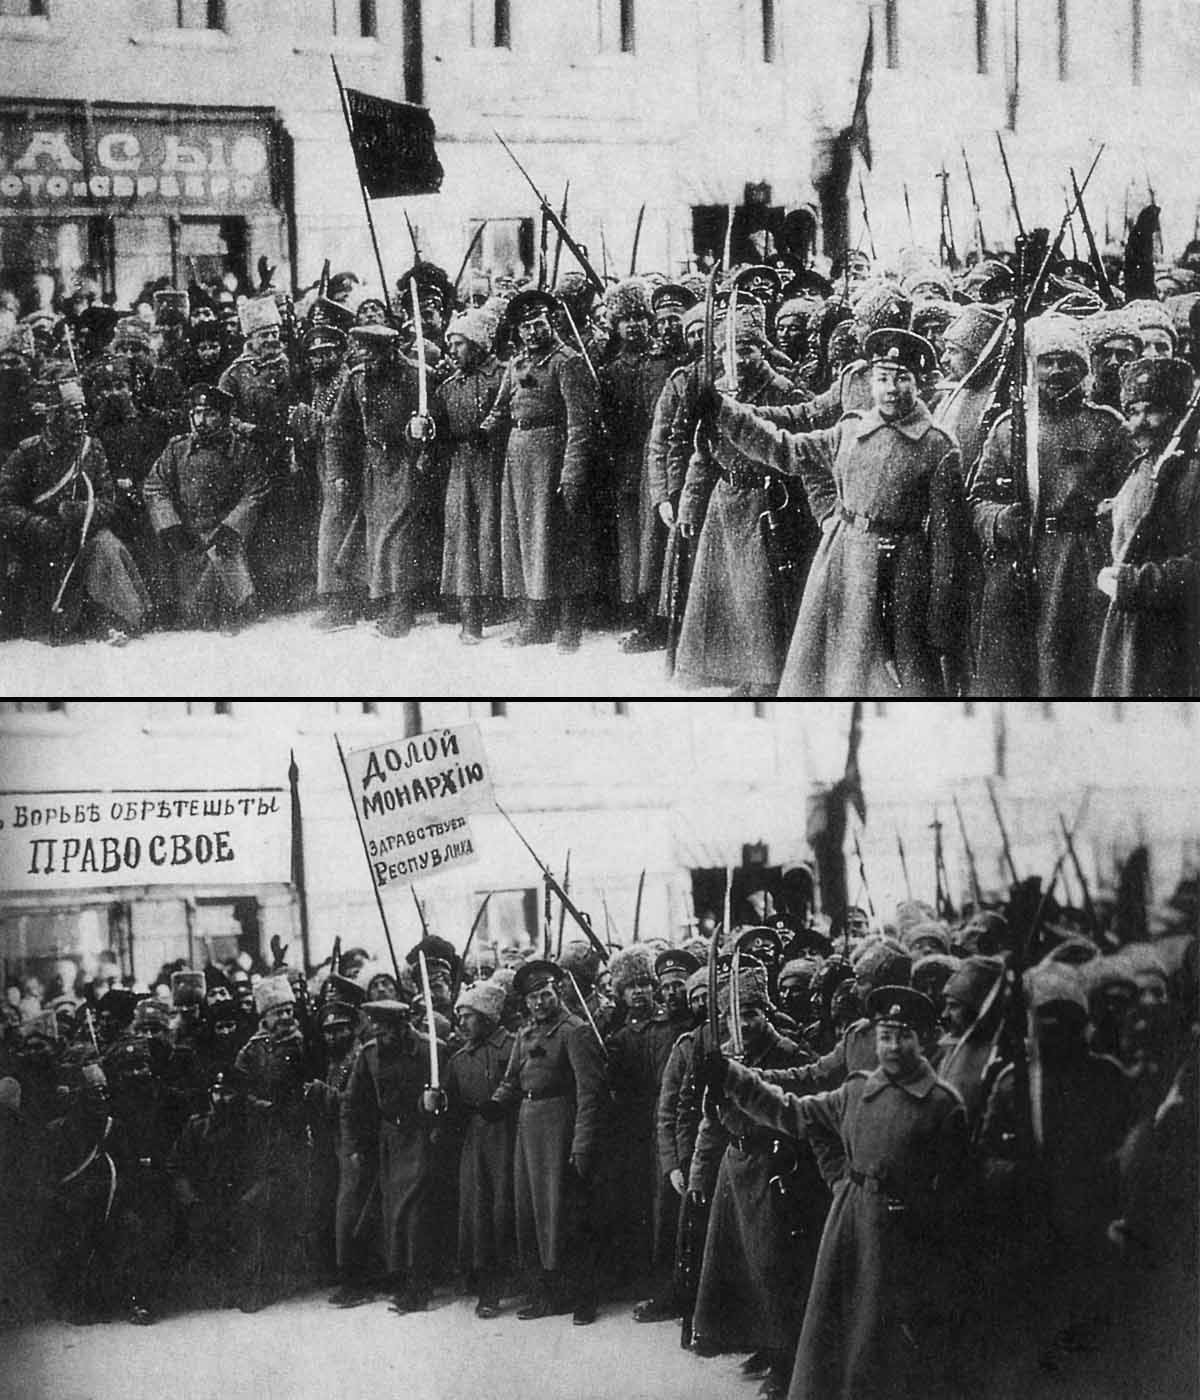 """Airbrushing Soviet history was sometimes about adding aspects, not just deleting them. For instance, this picture from a 1917 demonstration was not considered revolutionary enough by the powers that be: the shop sign on the left says """"Clocks. Gold and silver"""" and the text on a flag is unreadable. But hey presto, a little bit of Bolshevik magic later and the sign reads """"You'll take what's yours through struggle"""" and the flag – """"Down with the monarchy!"""""""